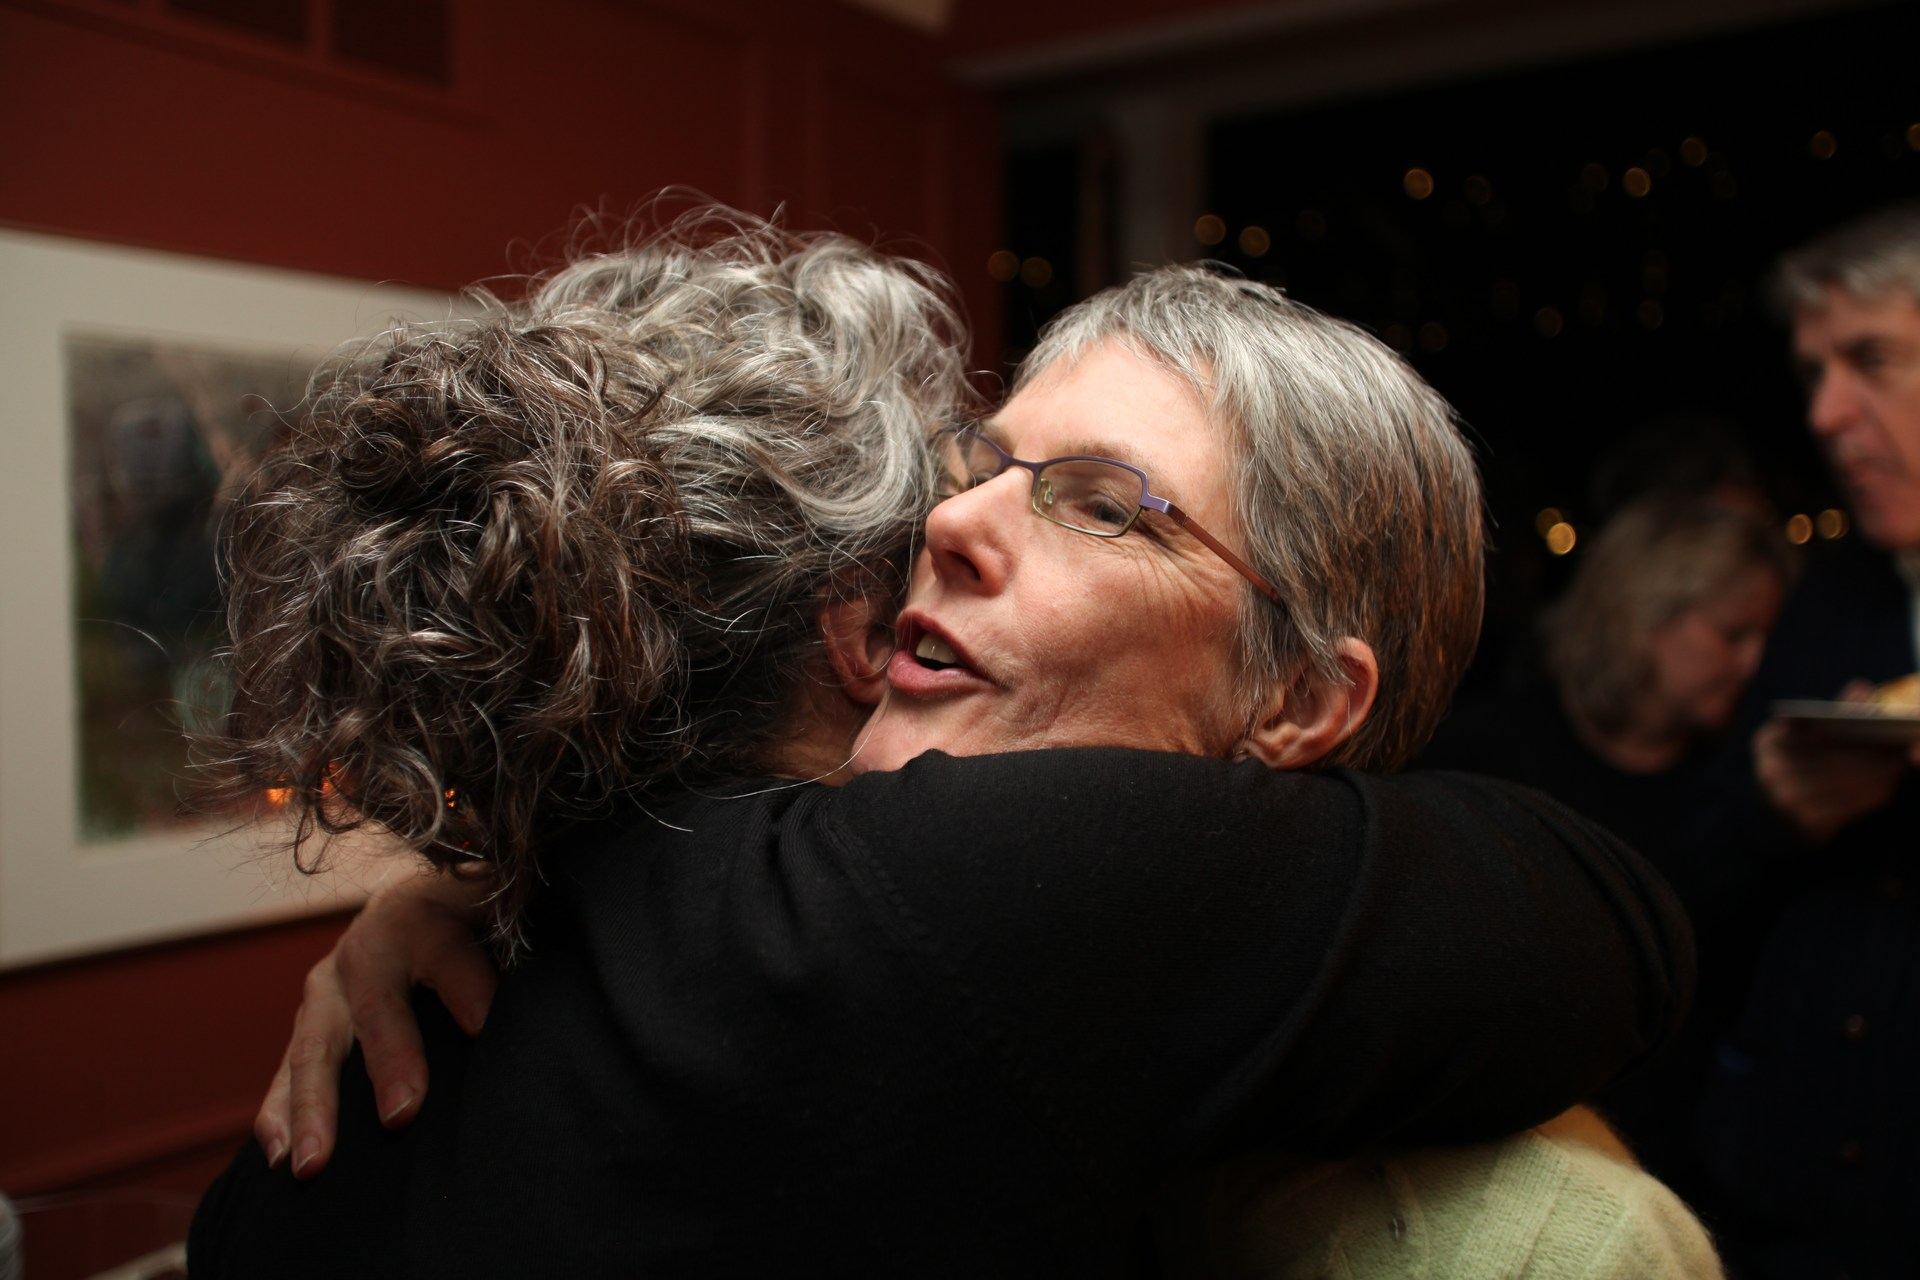 Two parents hugging